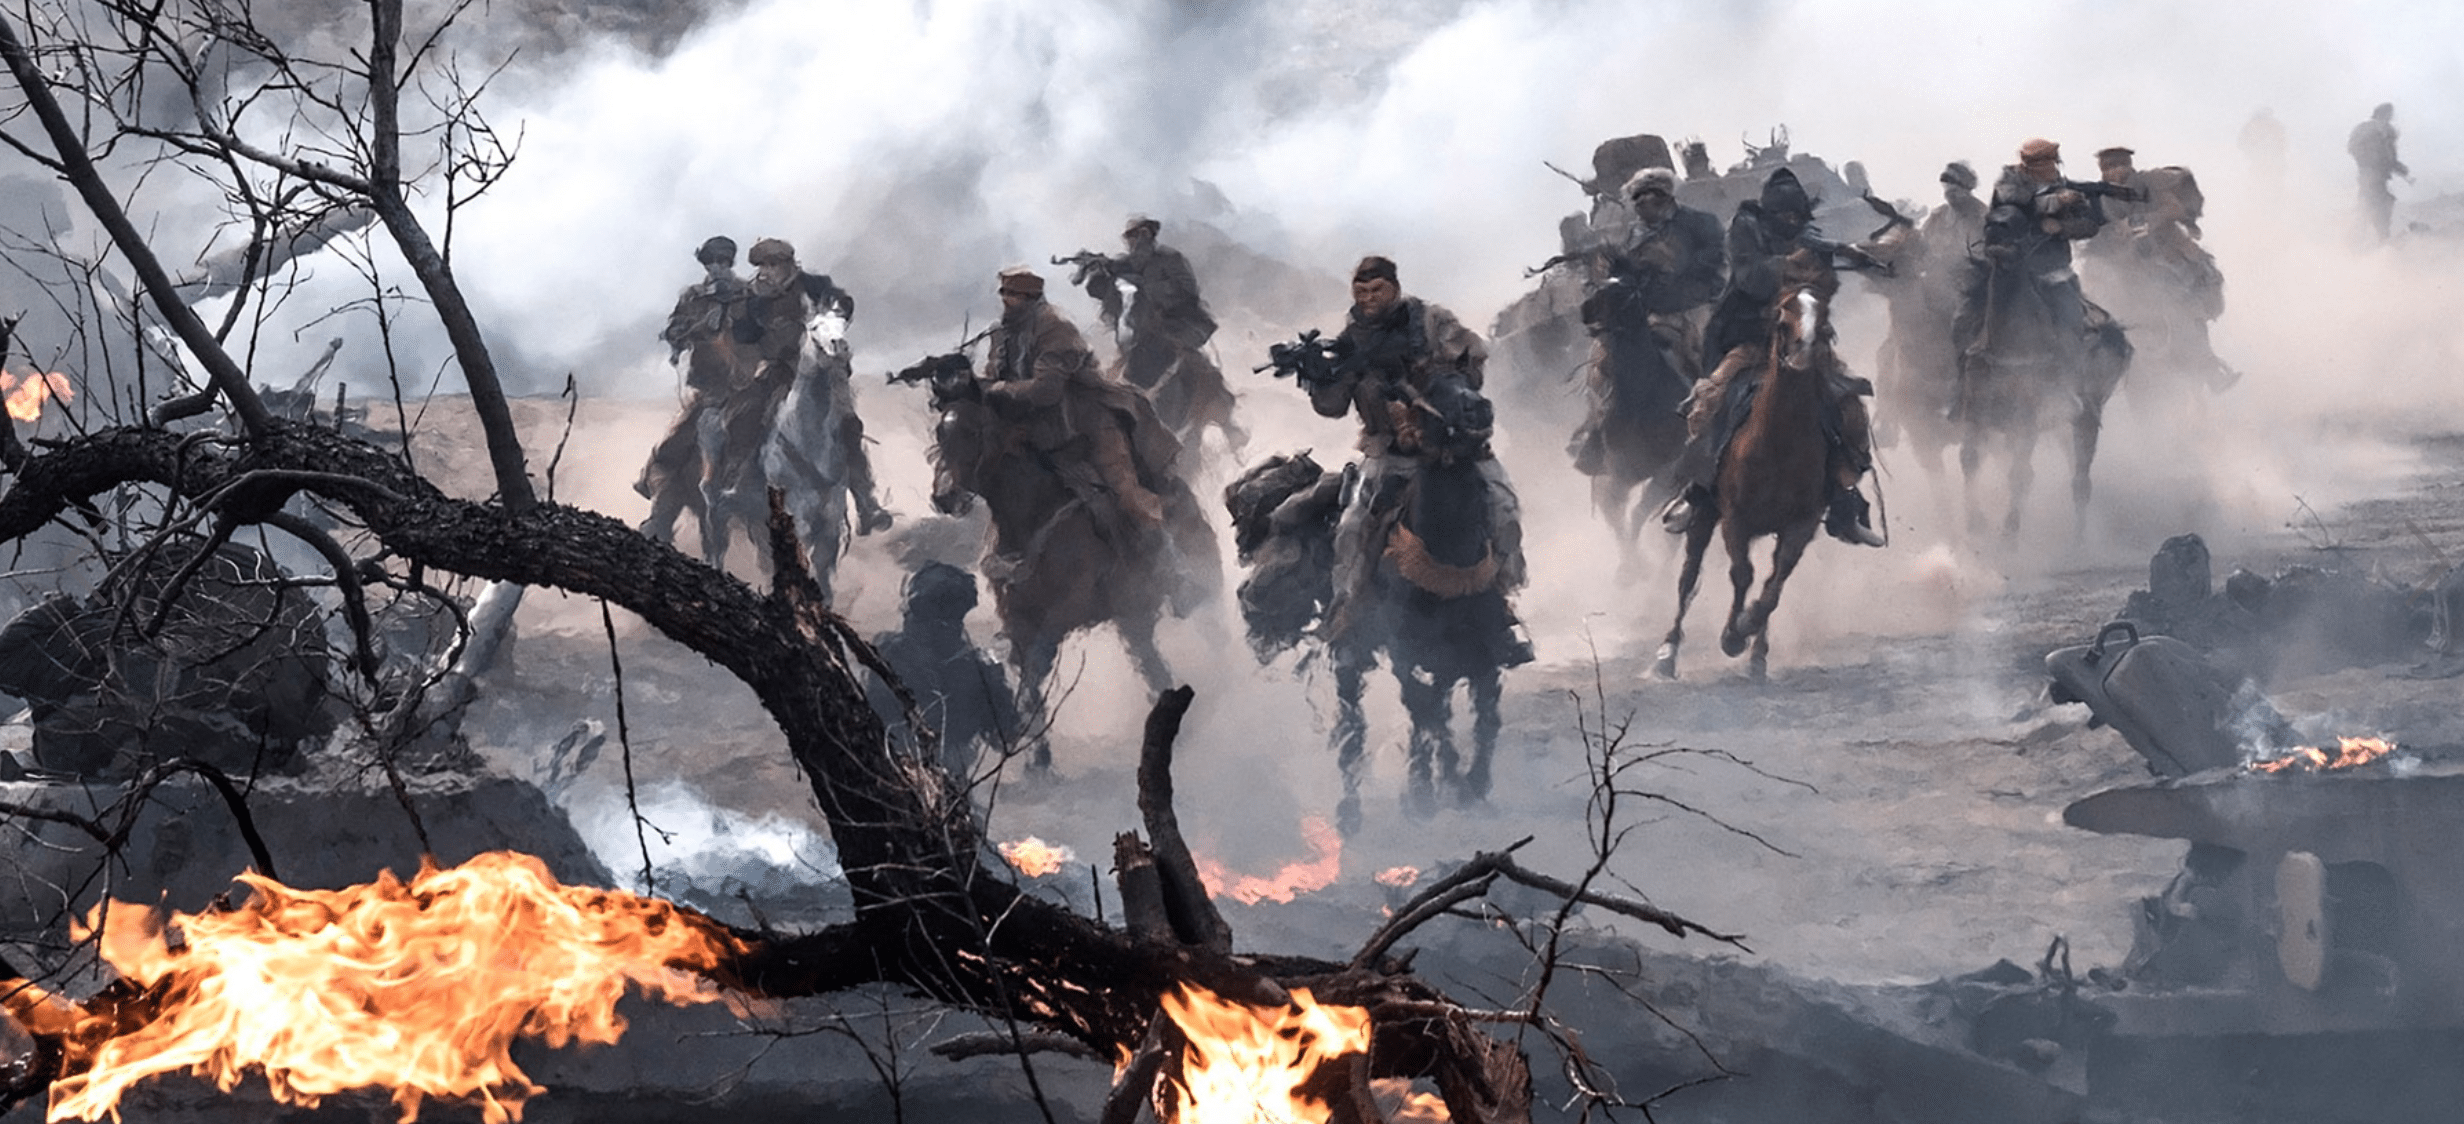 12 Strong Movie Review - Is it worth watching? - simplytodaylife.com